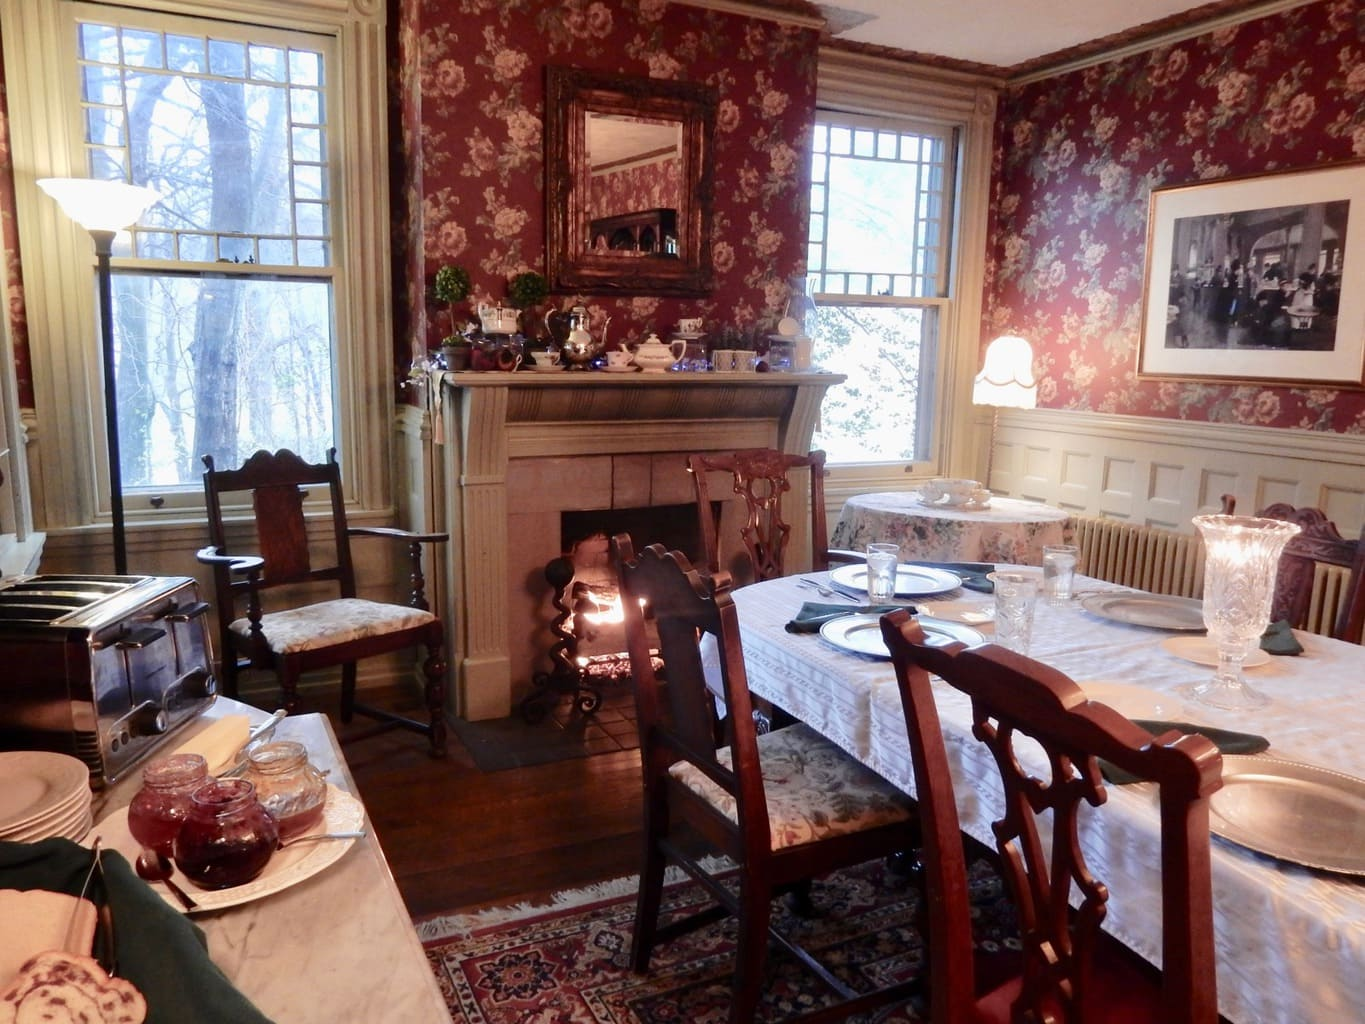 Candlelit Breakfast Faunbrook BnB West Chester PA